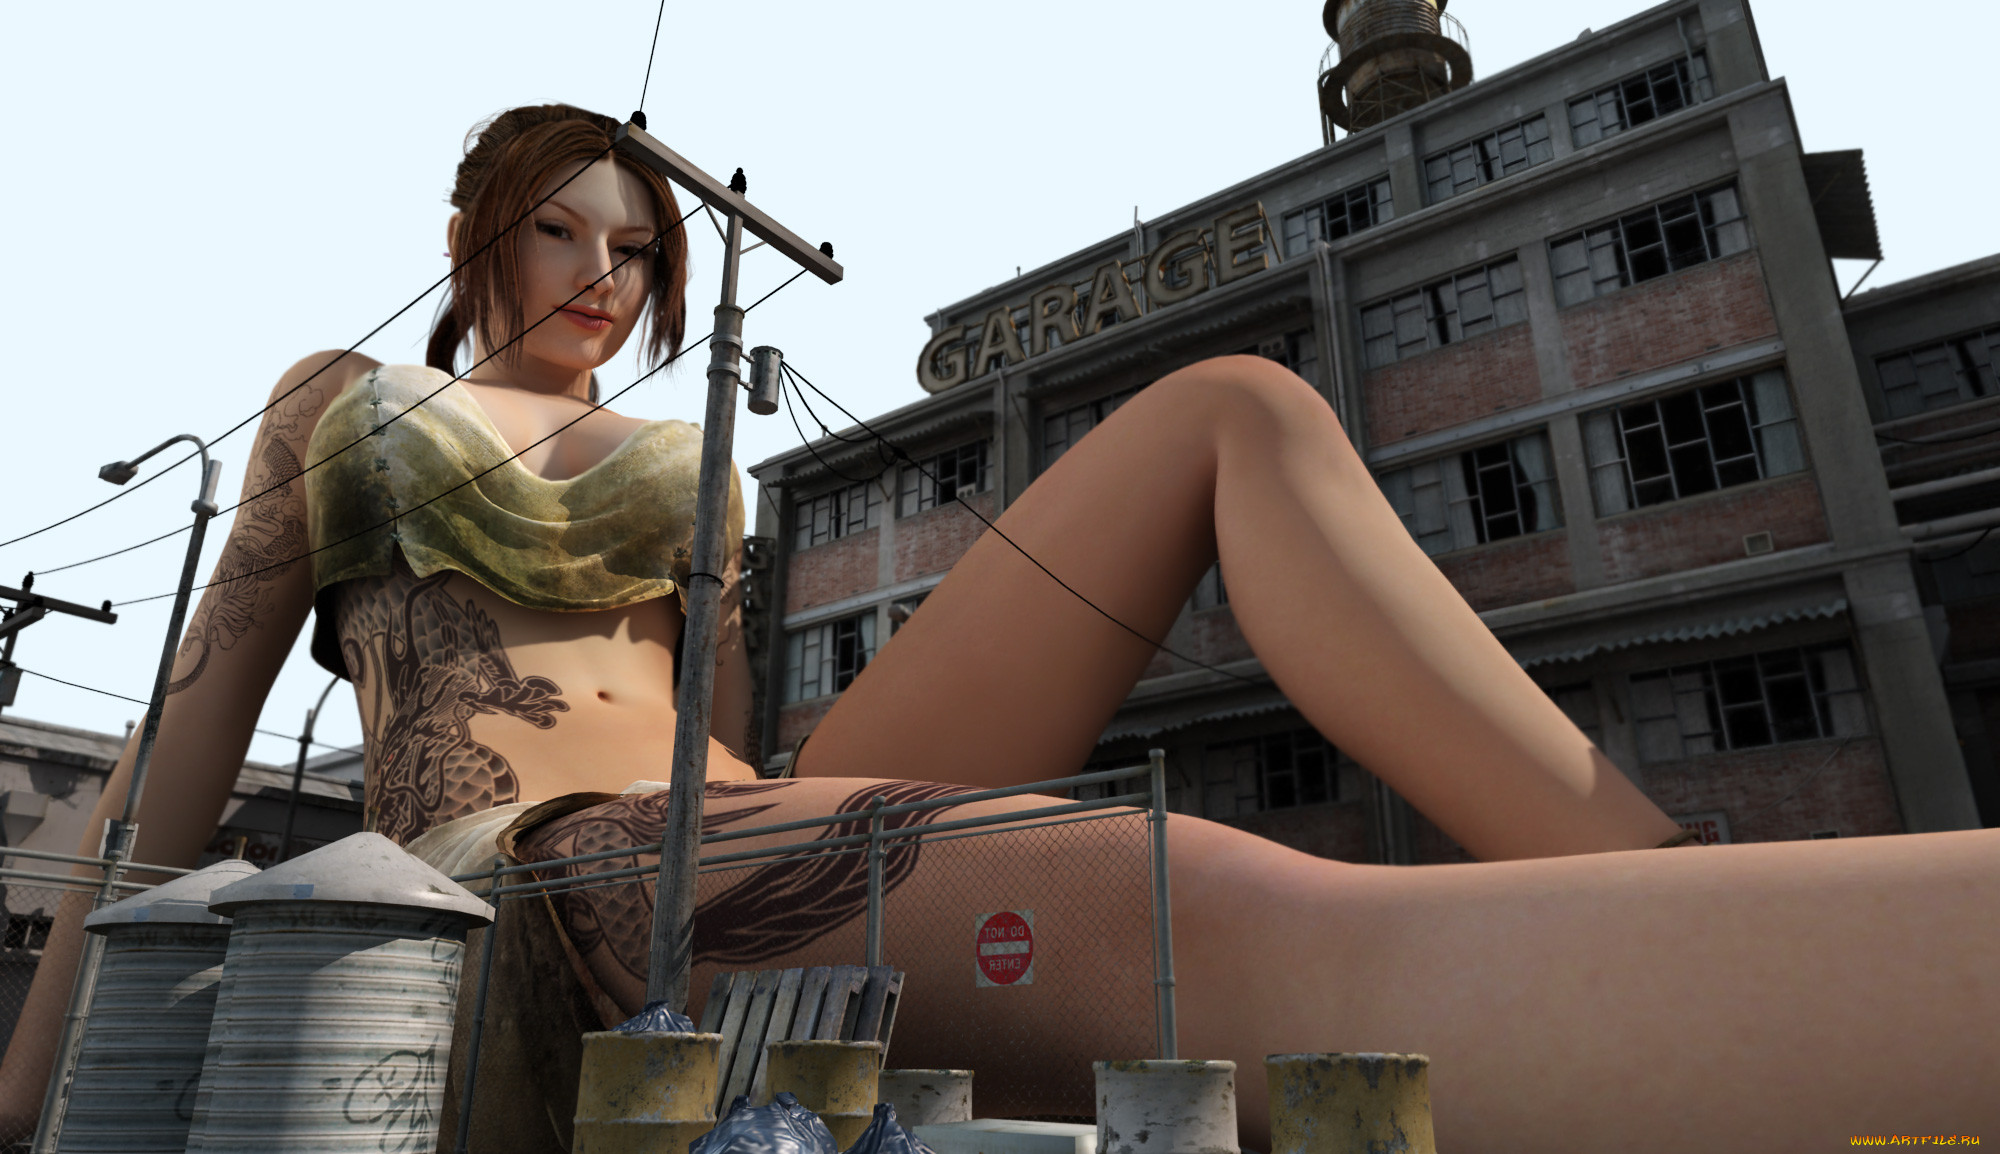 Giantess woman 3d pron image